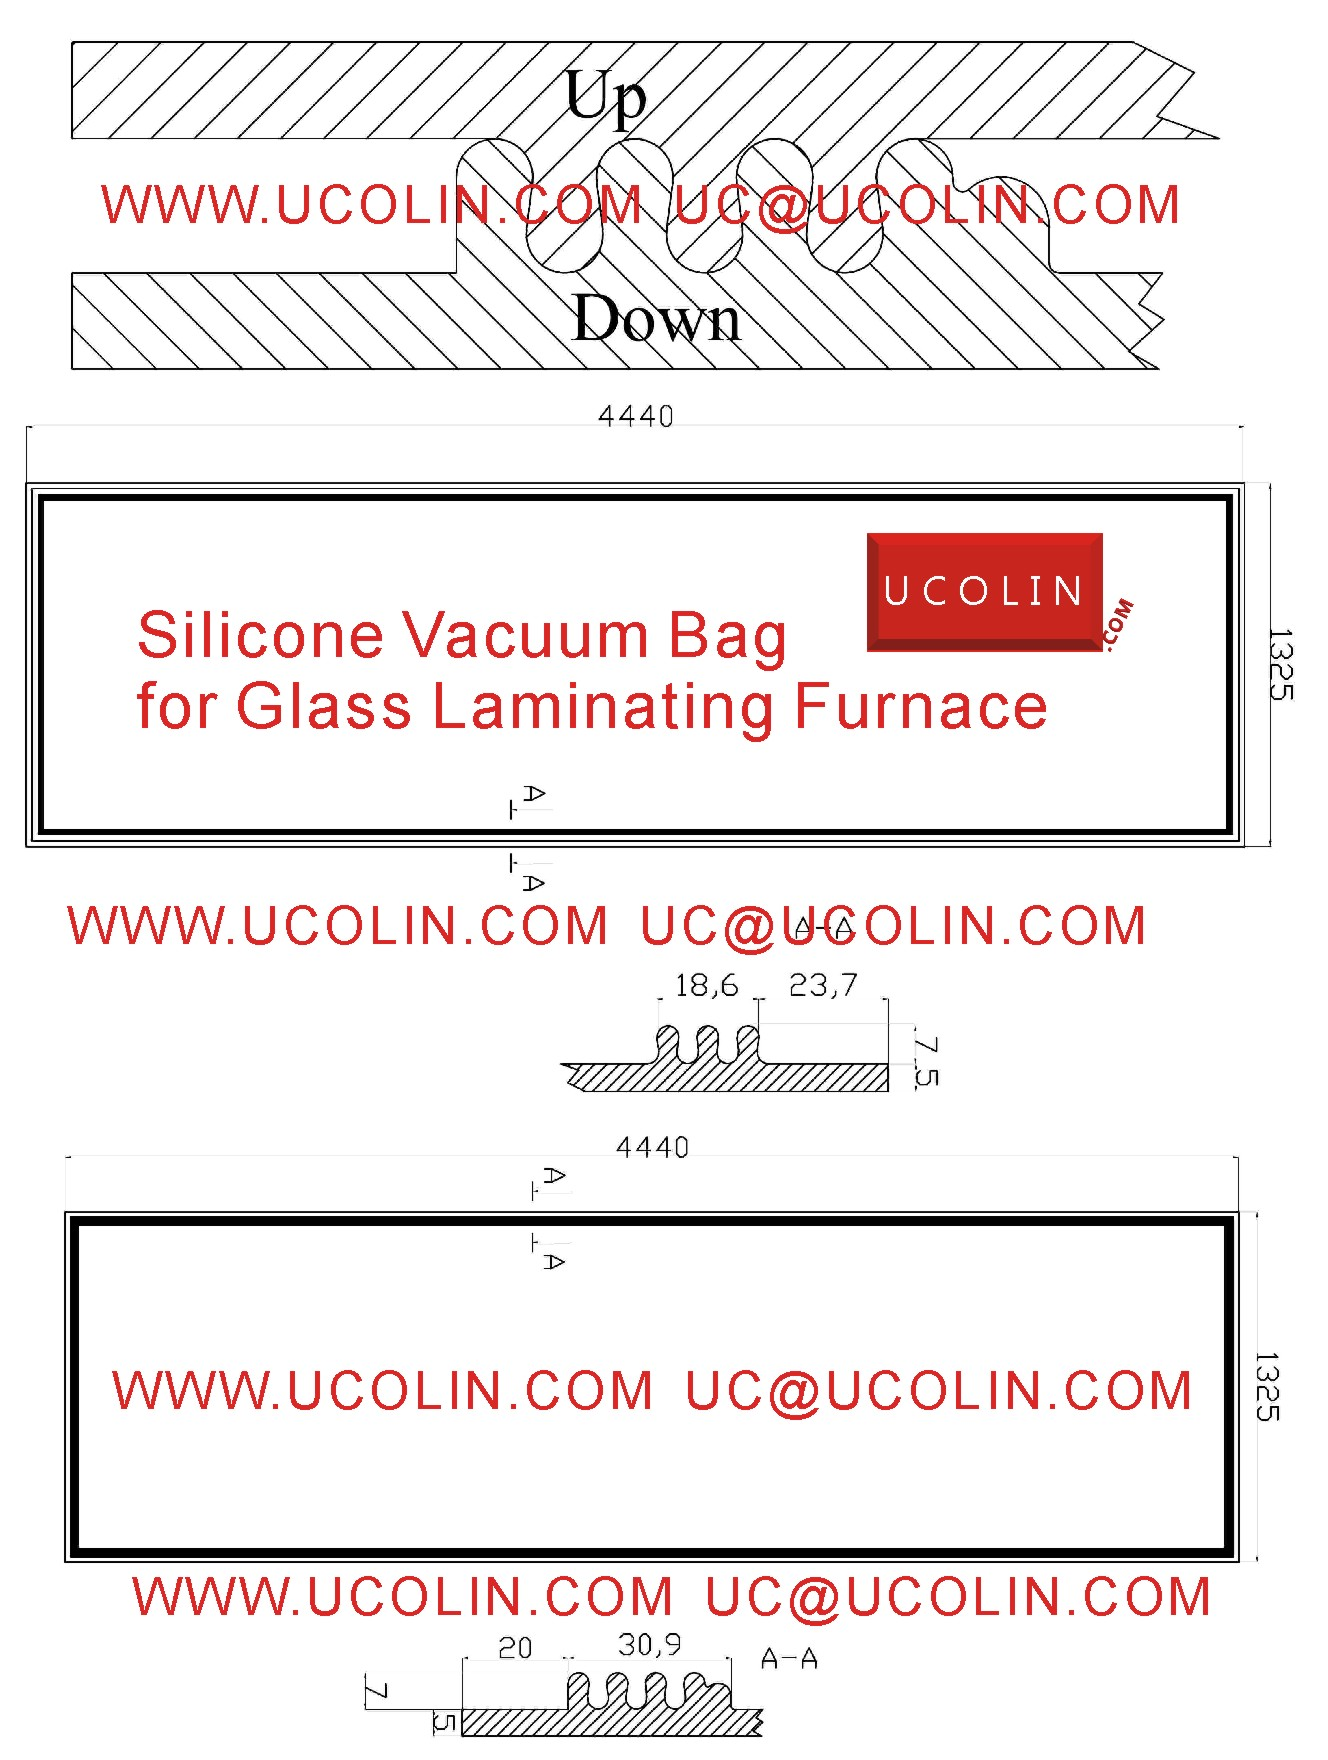 Draft of Silicone Vacuum Bag for Glass Laminating Furnace